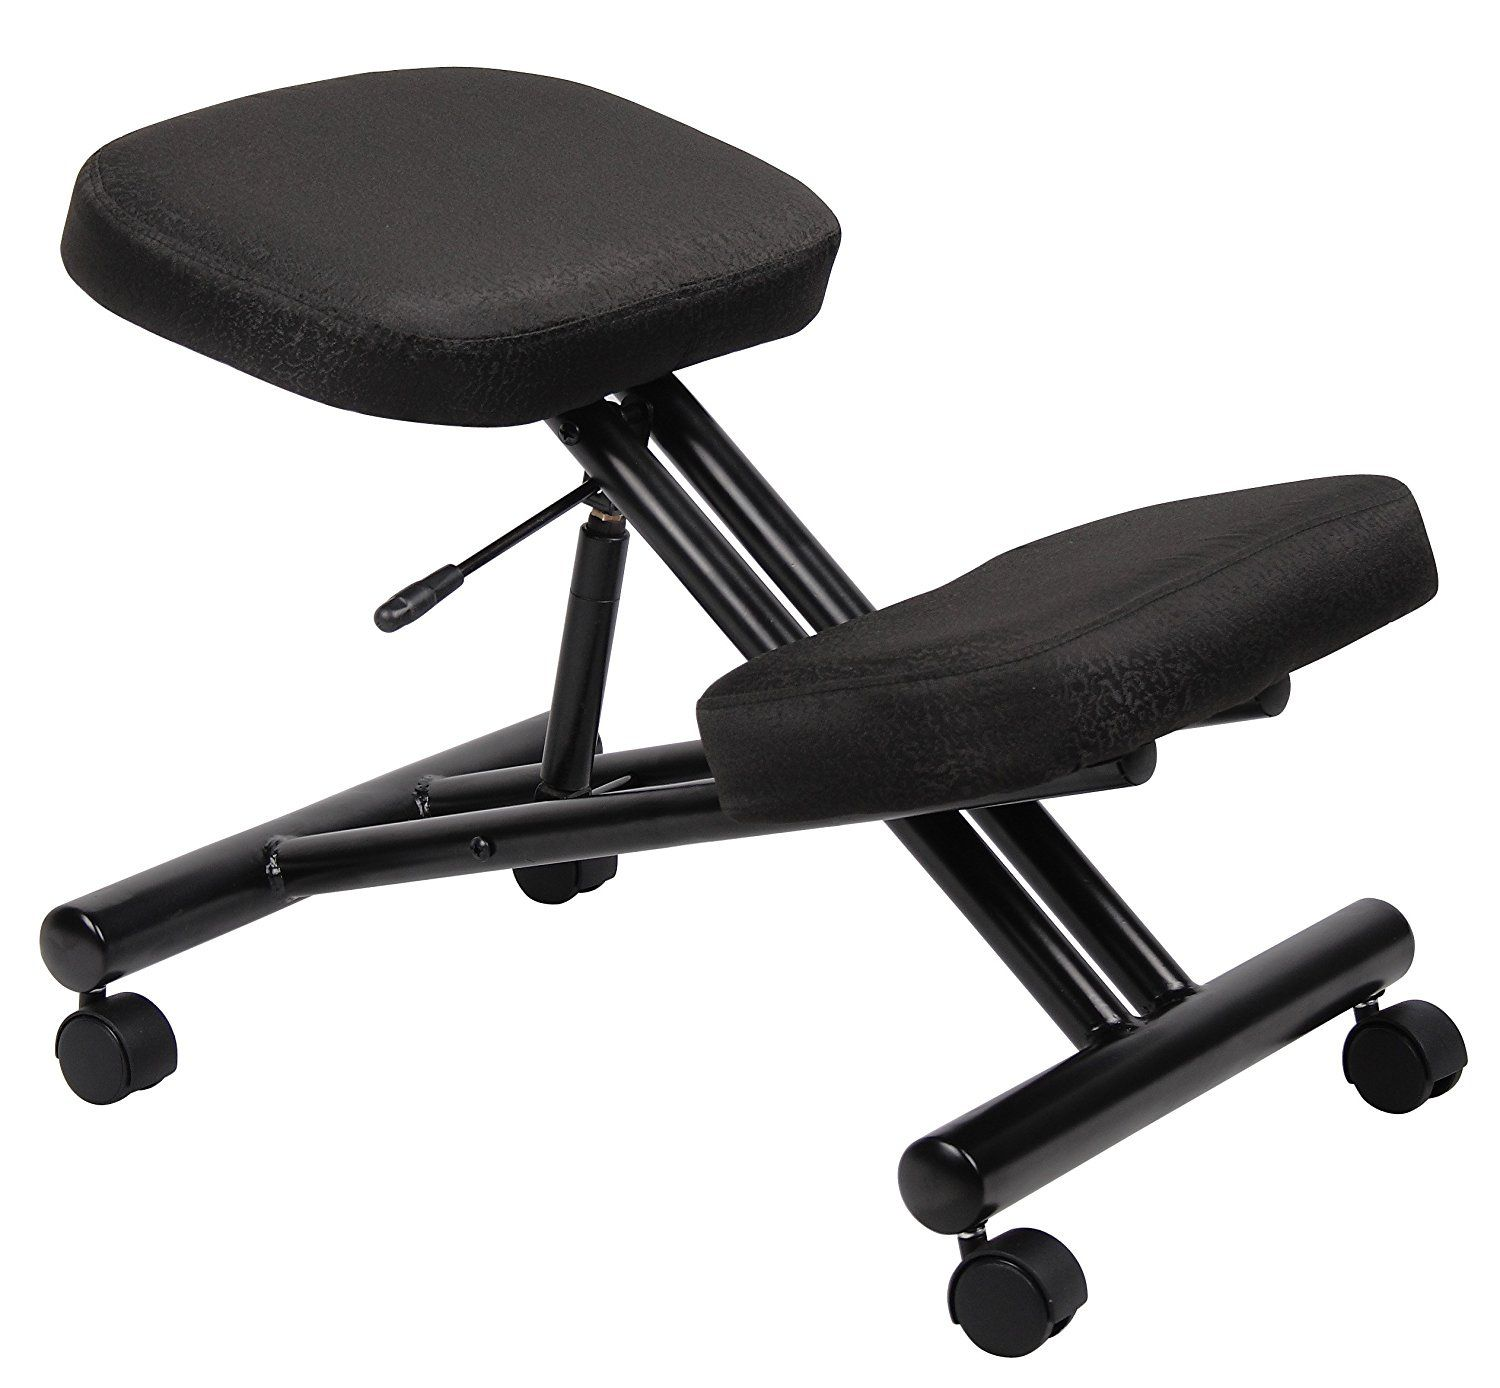 ergonomic chair betterposture saddle chair jobri. Kneeling Chair Office Depot - Rustic Home Furniture Check More At Http:// Ergonomic Betterposture Saddle Jobri